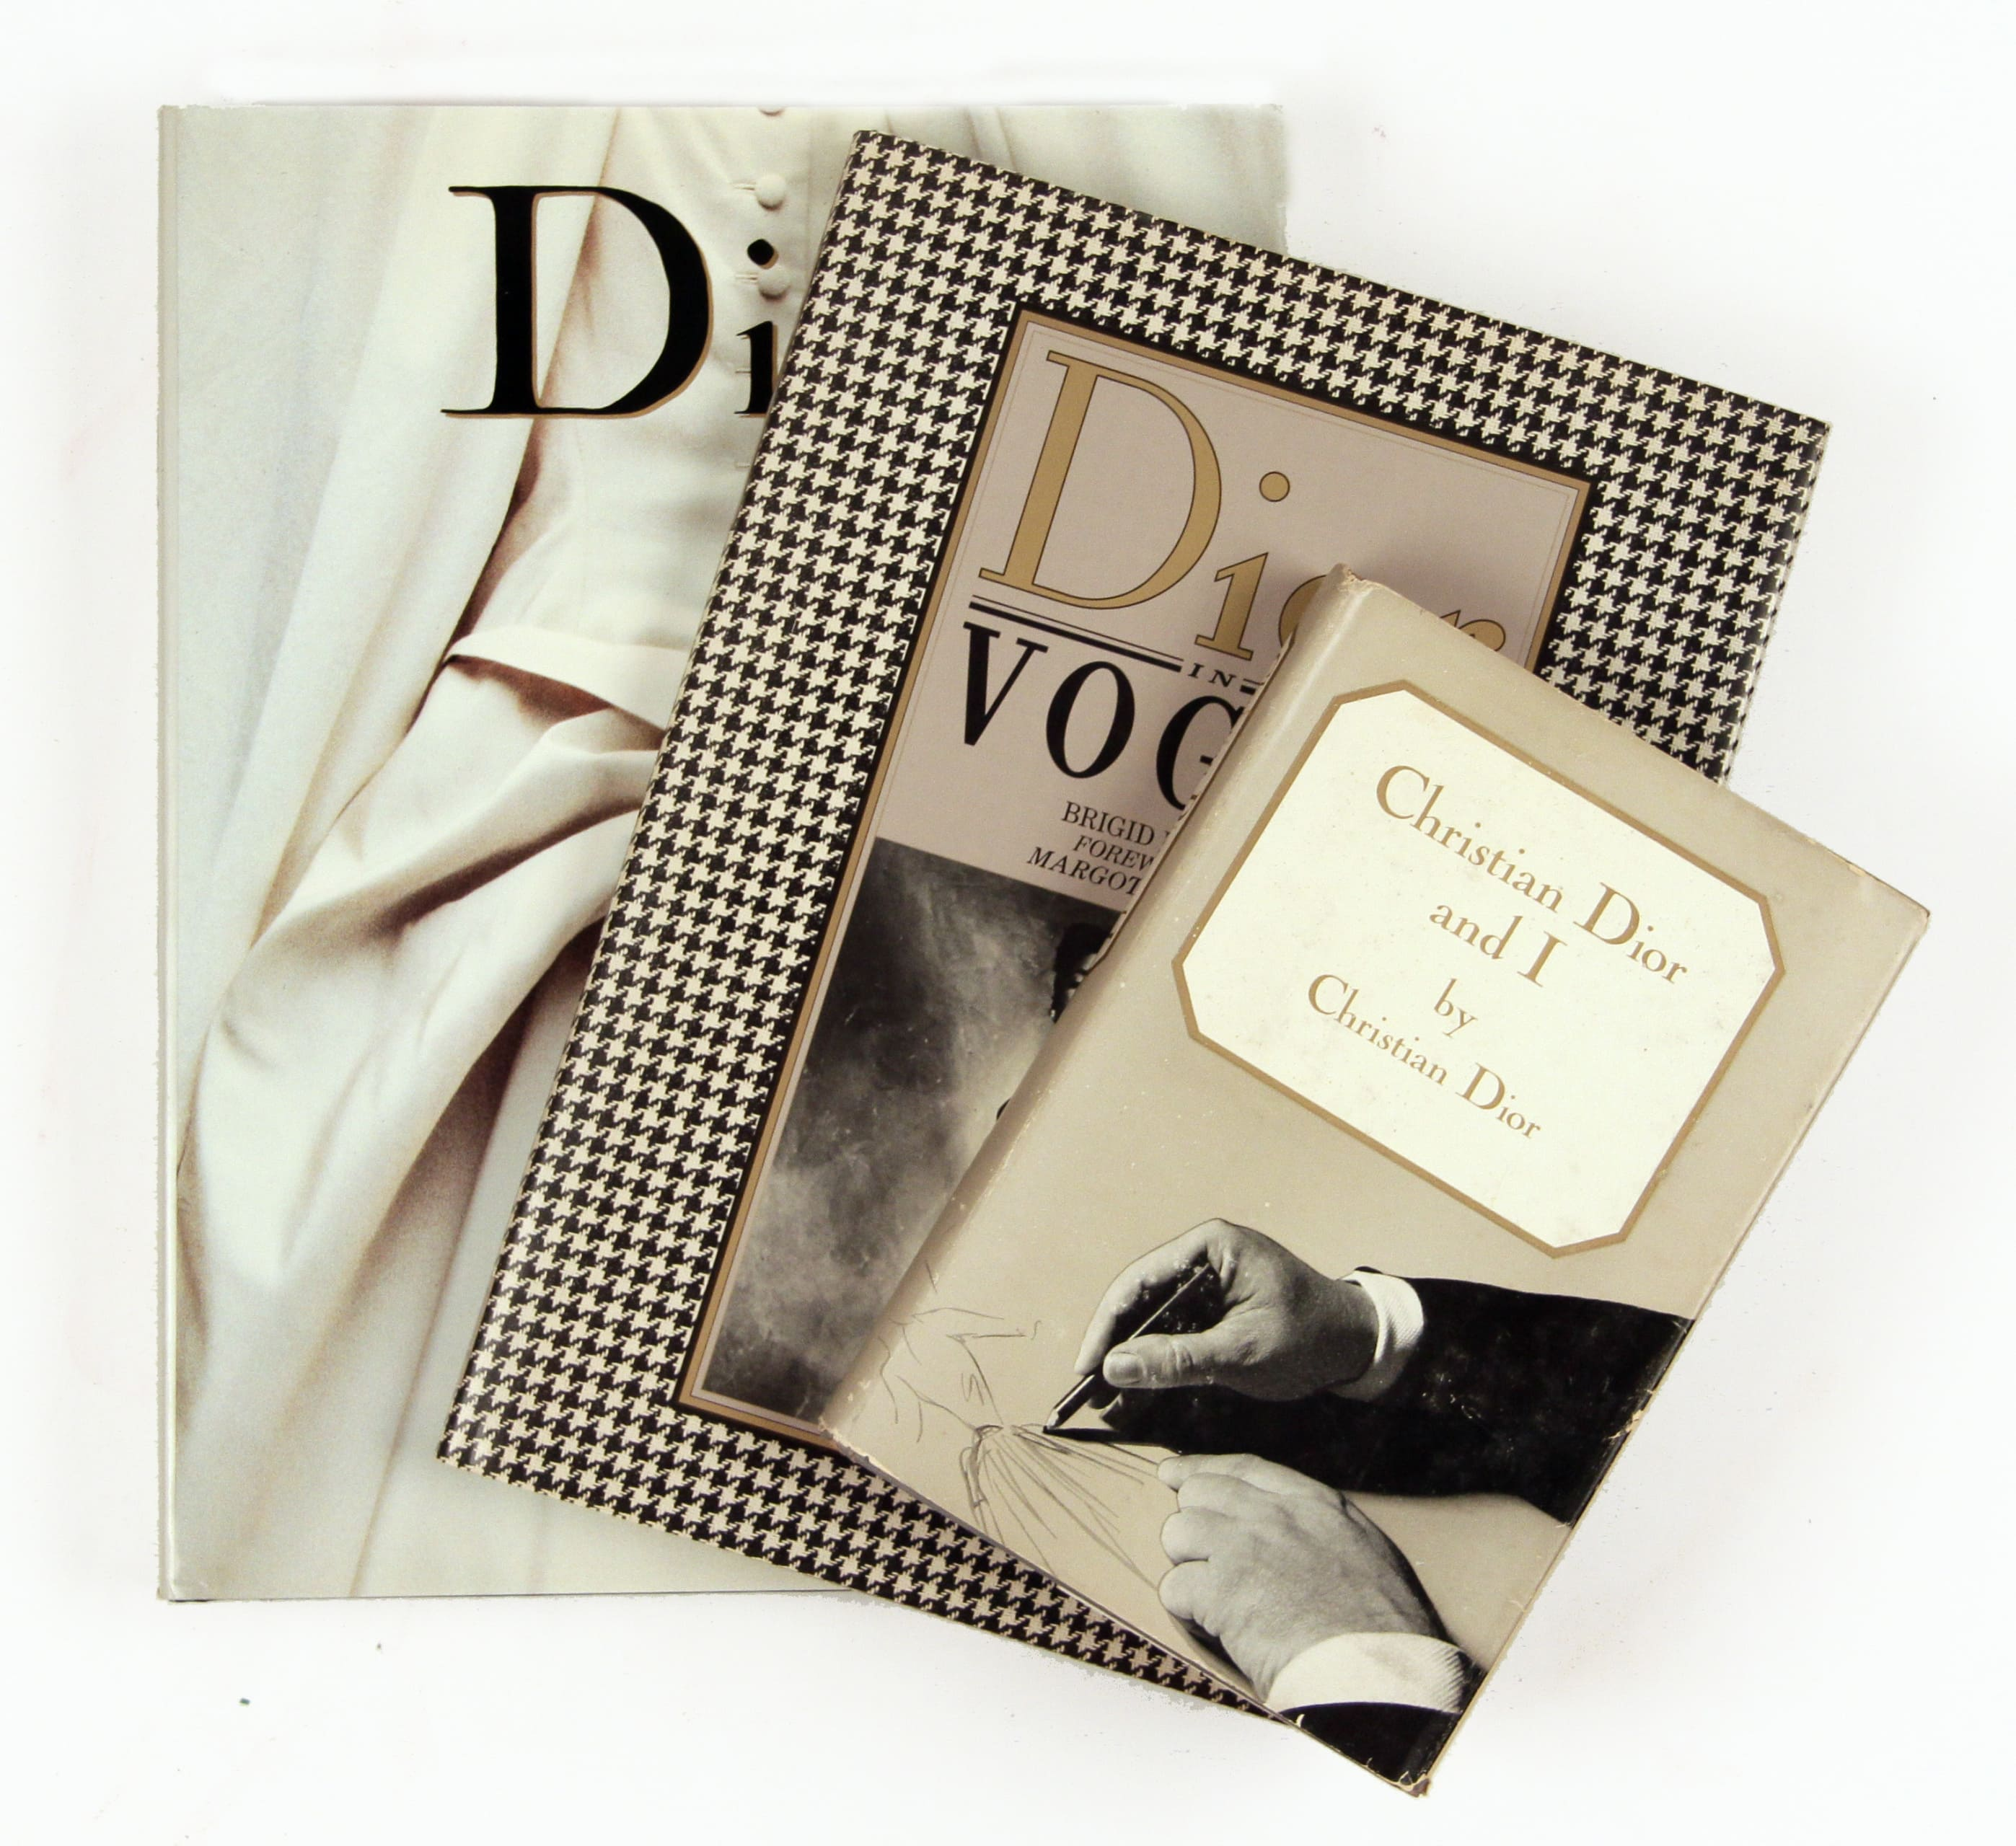 christian dior set of 3 sold